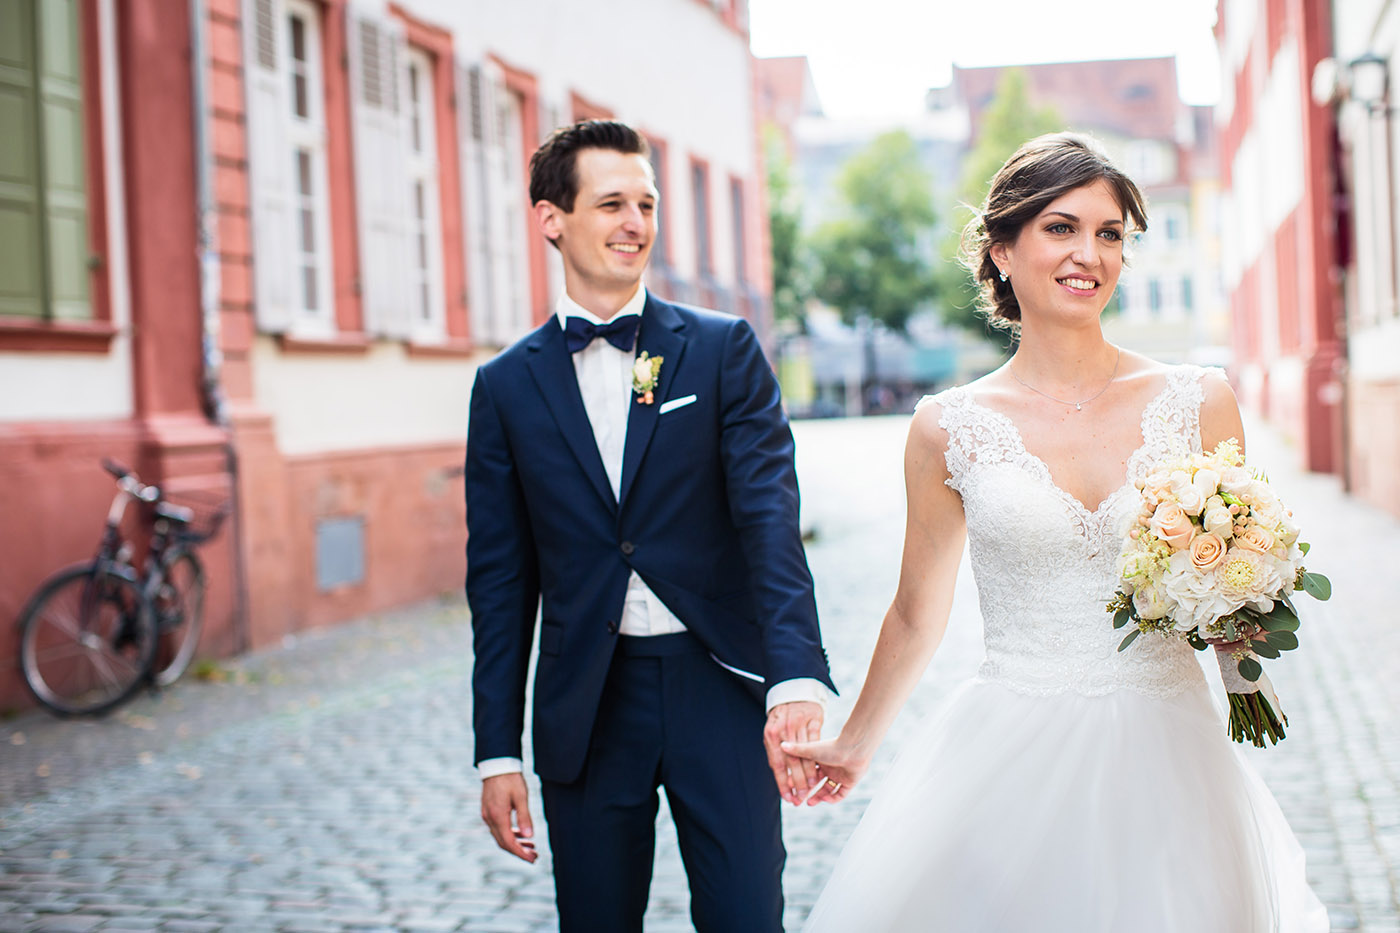 Hochzeit in der Eventlocation Grenzhof in Heidelberg